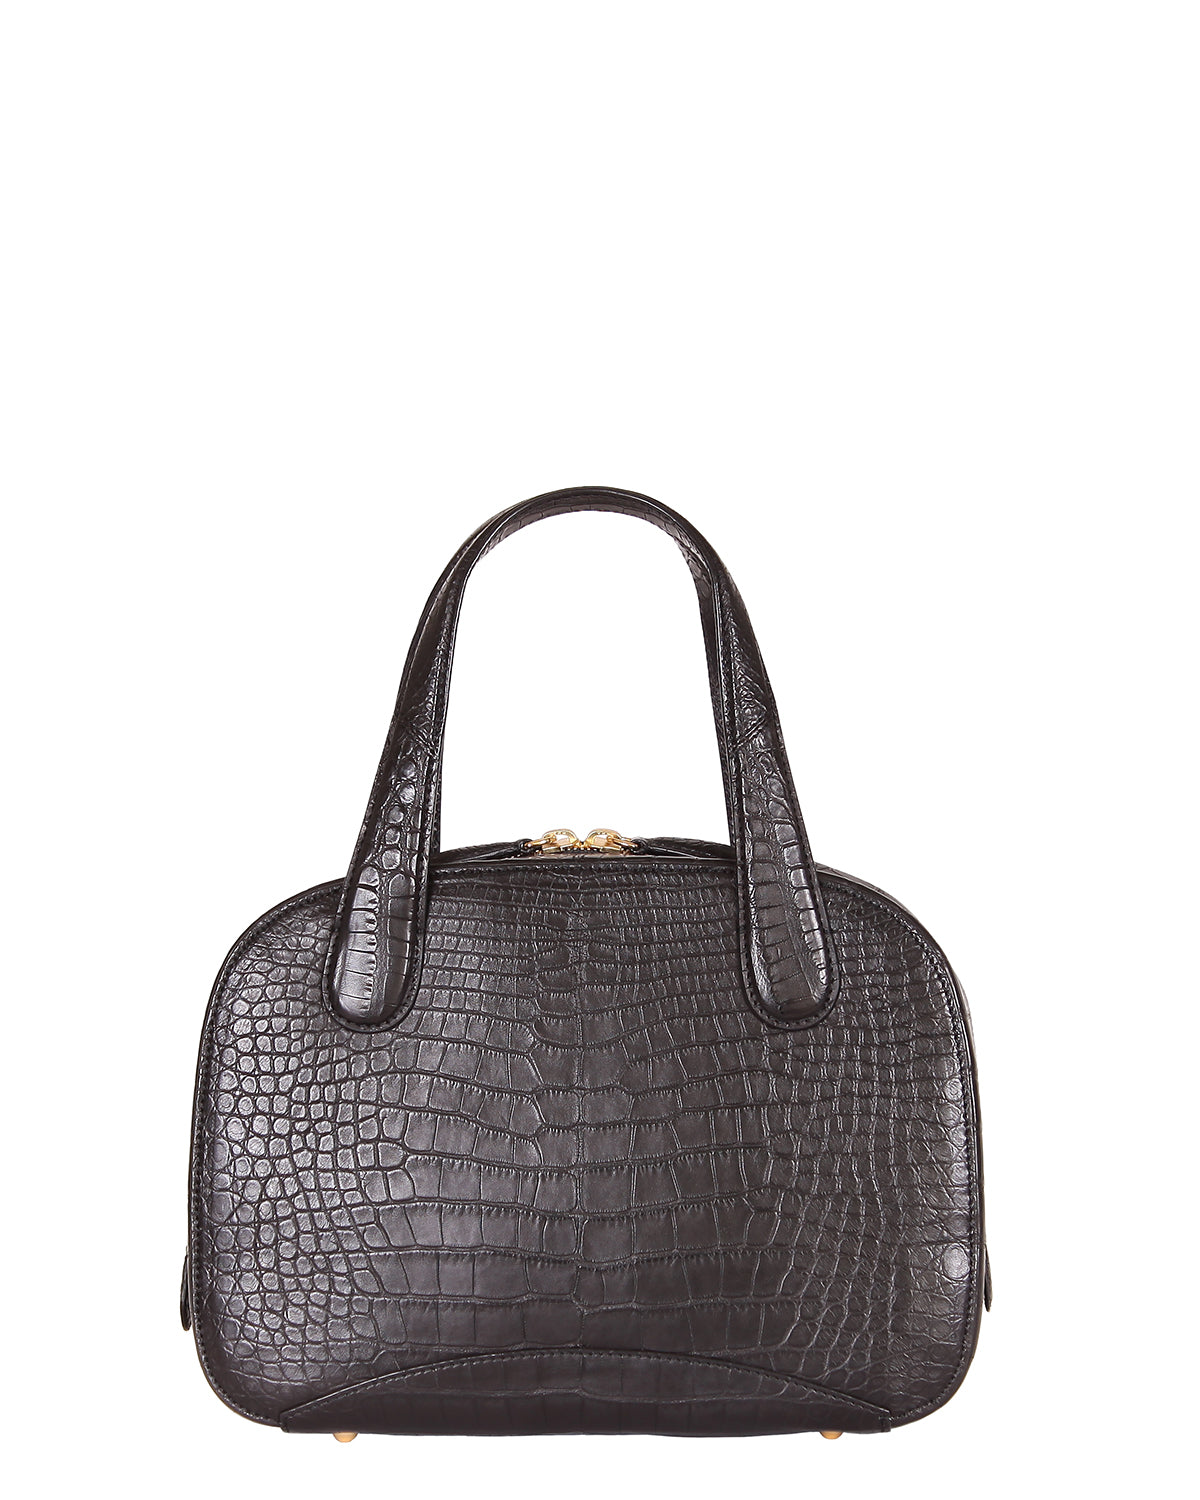 Yara Bashoor Adam Tote Handbag Black Yellow Gold Genuine American Alligator Back View